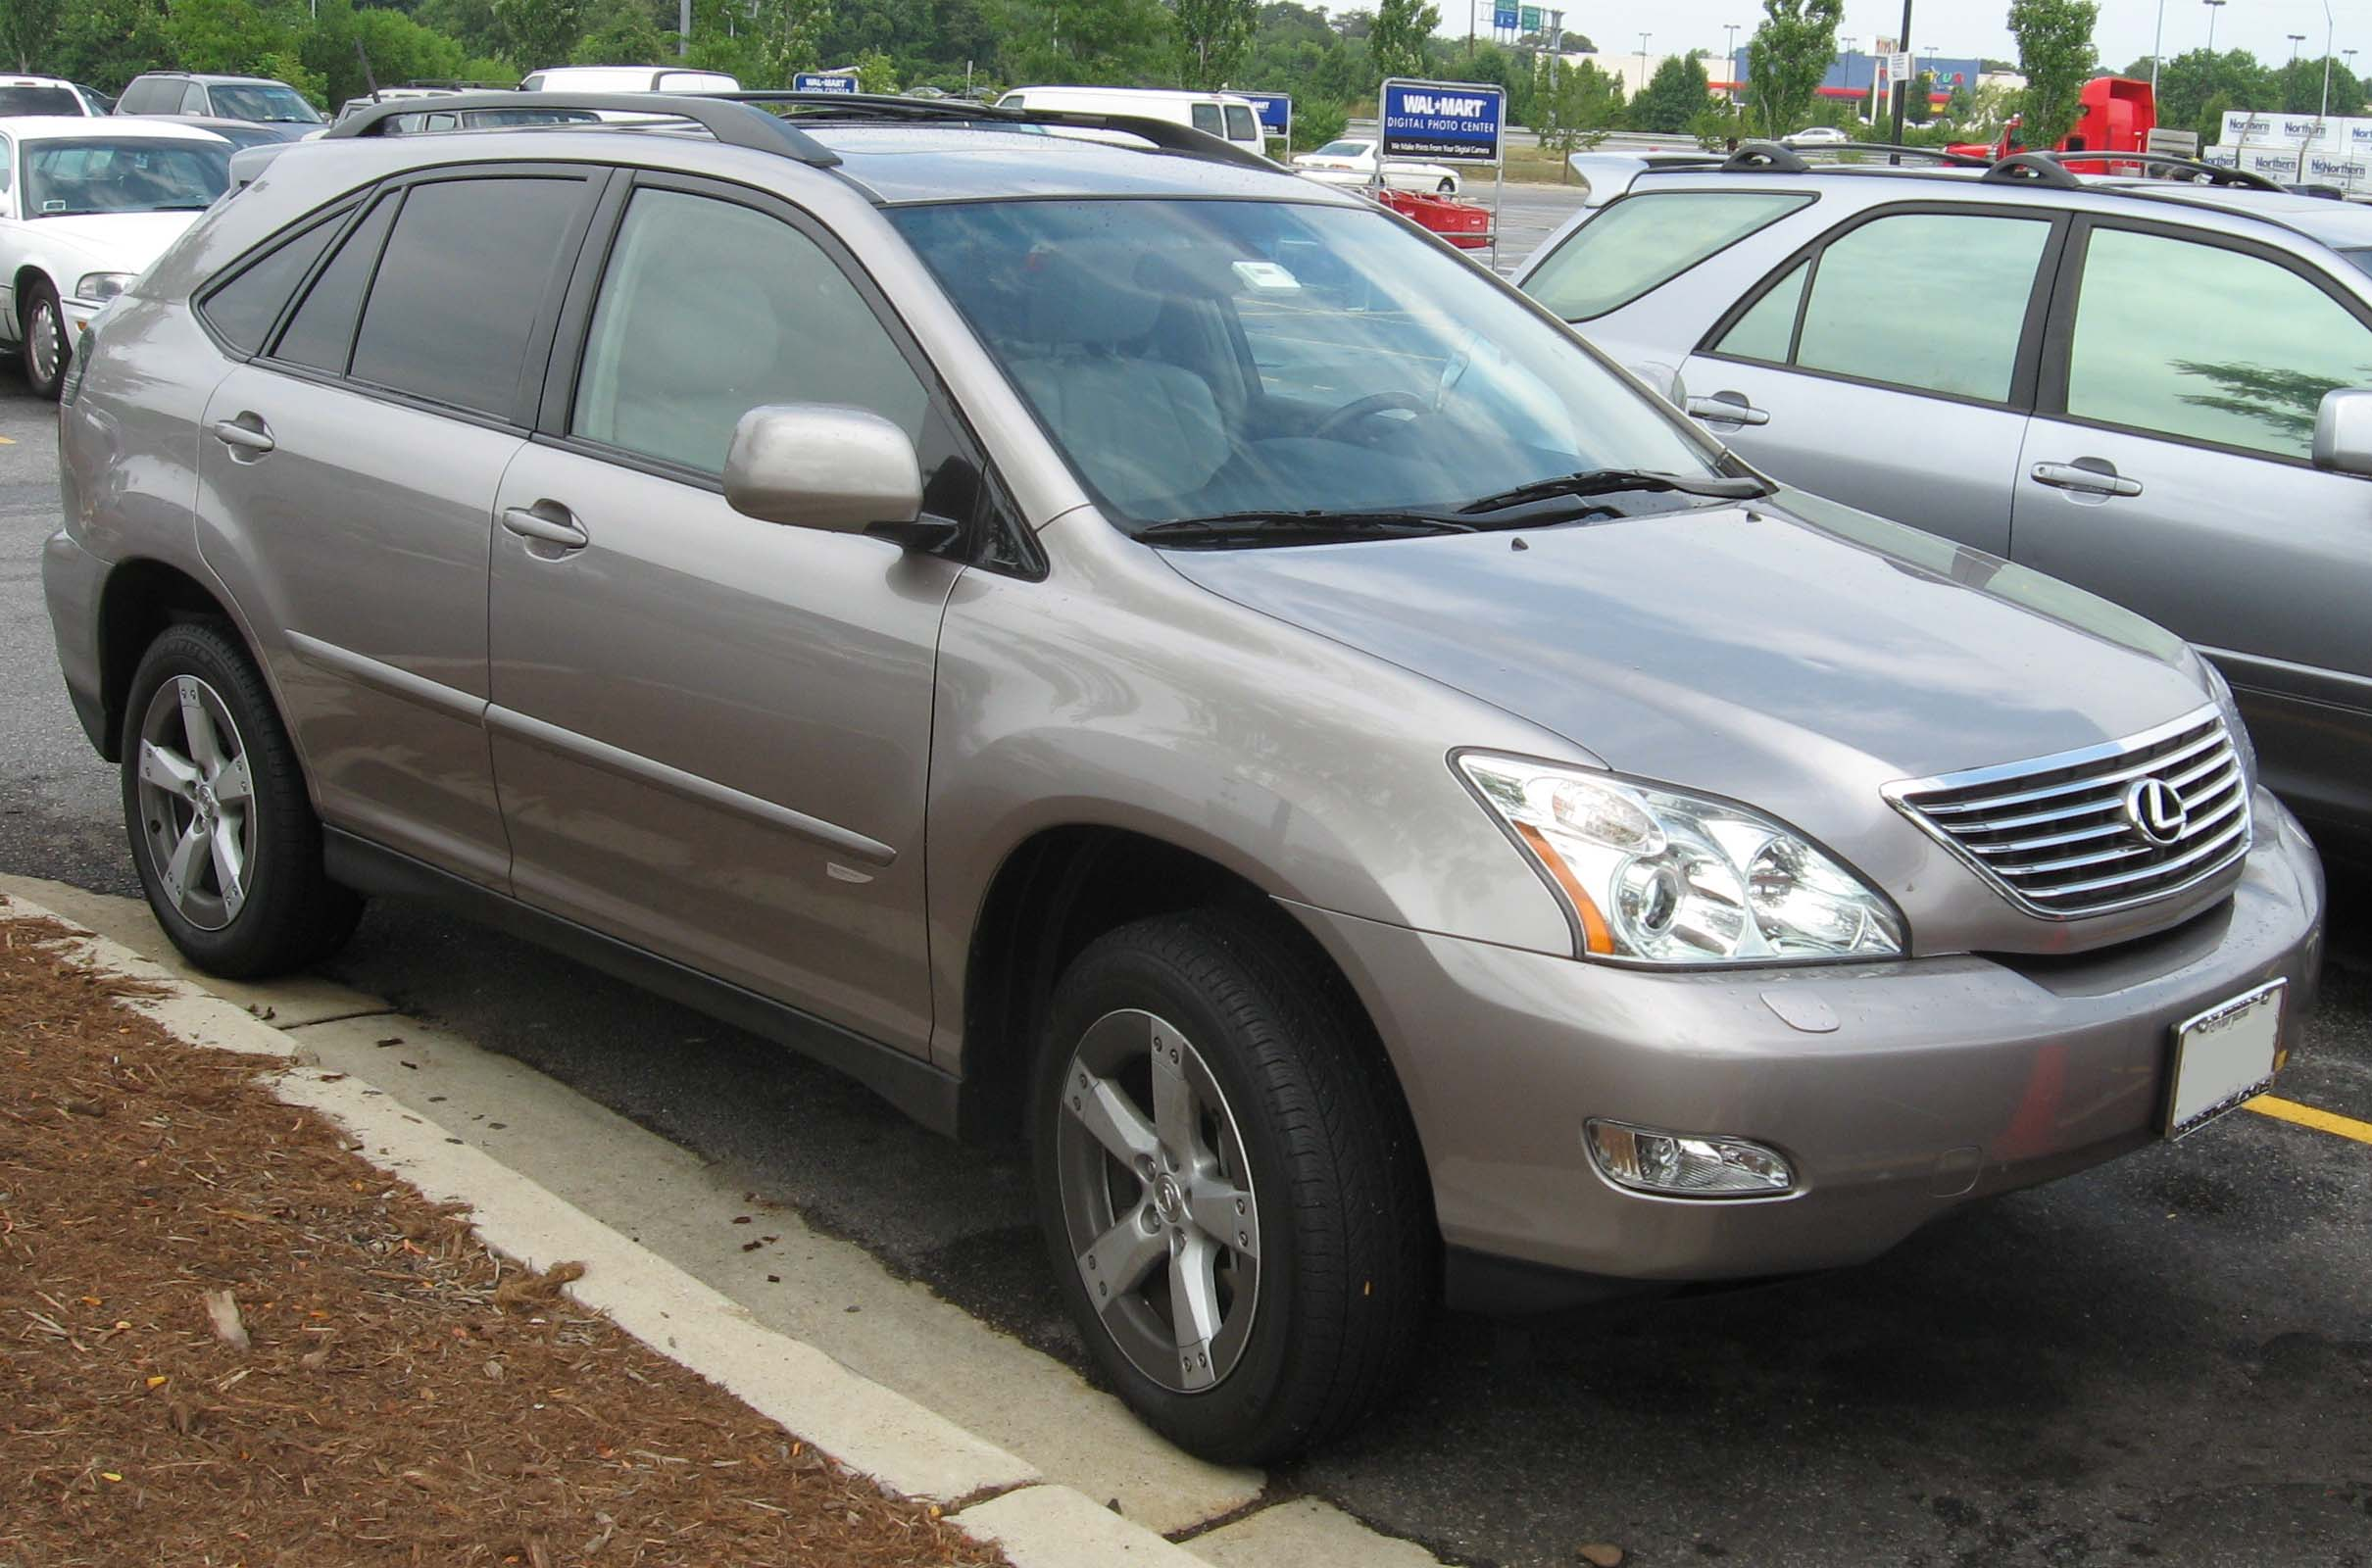 https://upload.wikimedia.org/wikipedia/commons/5/50/2005-Lexus-RX330-Thundercloud.jpg